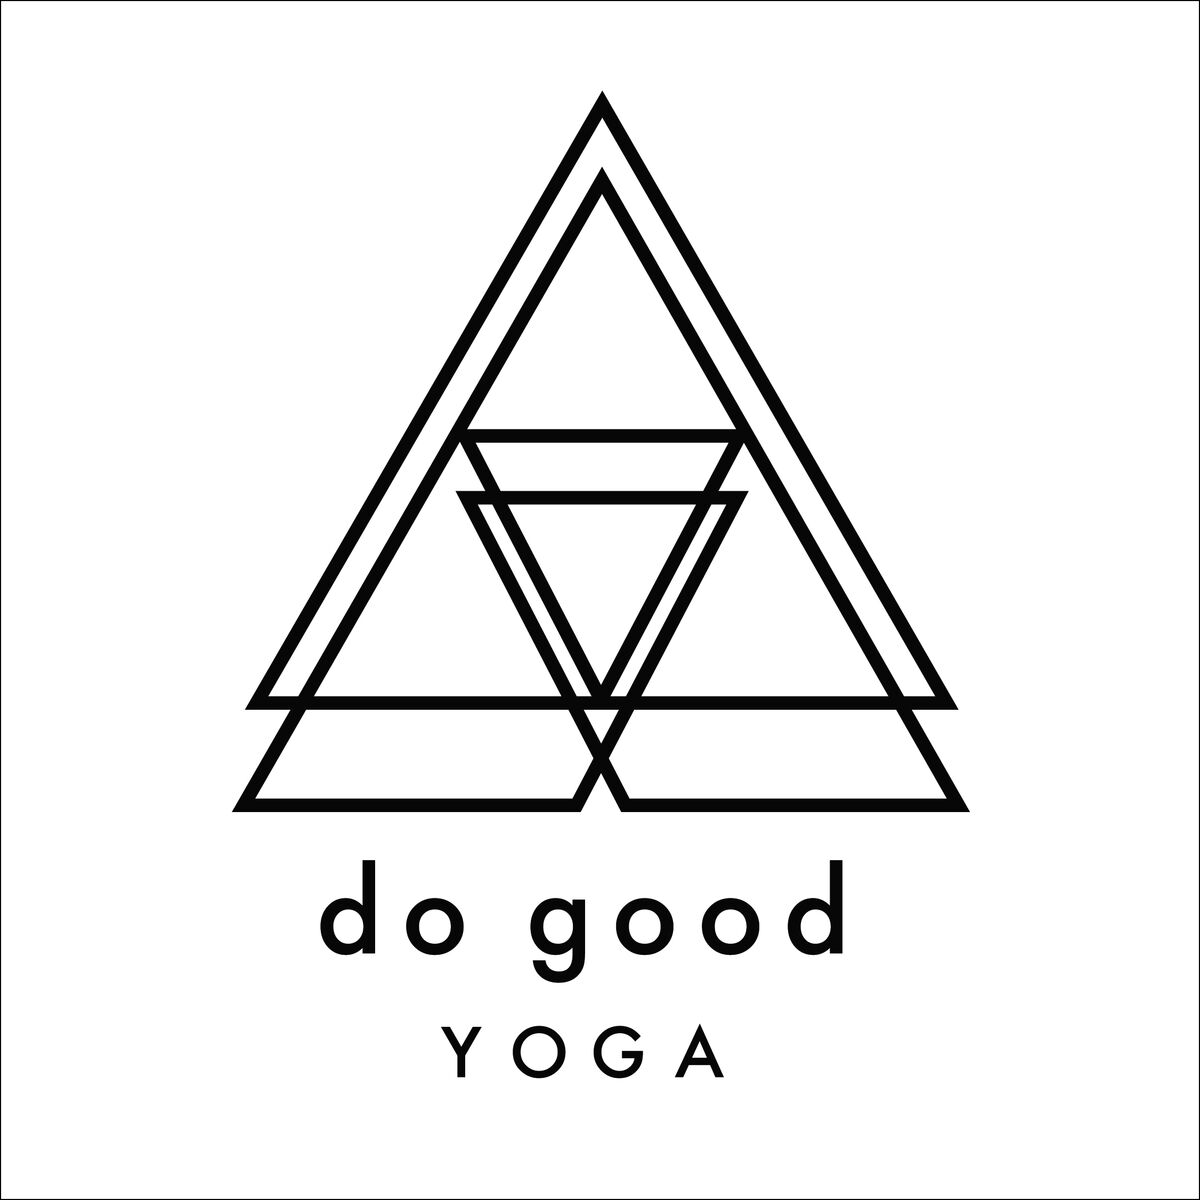 do good yoga